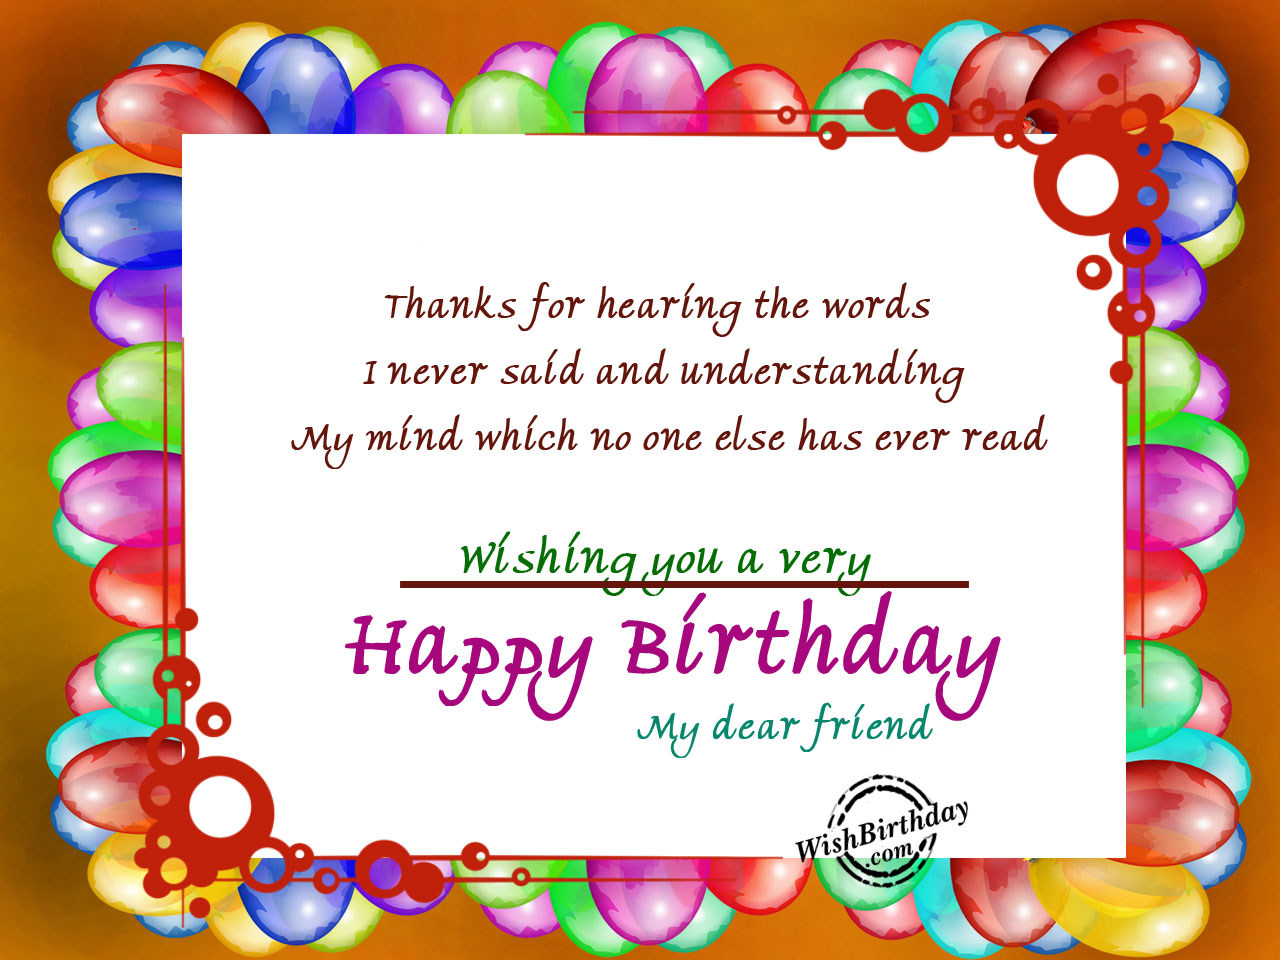 Birthday Wishes For Best Friend Birthday Images Pictures – Greeting Words for Birthday Wishes